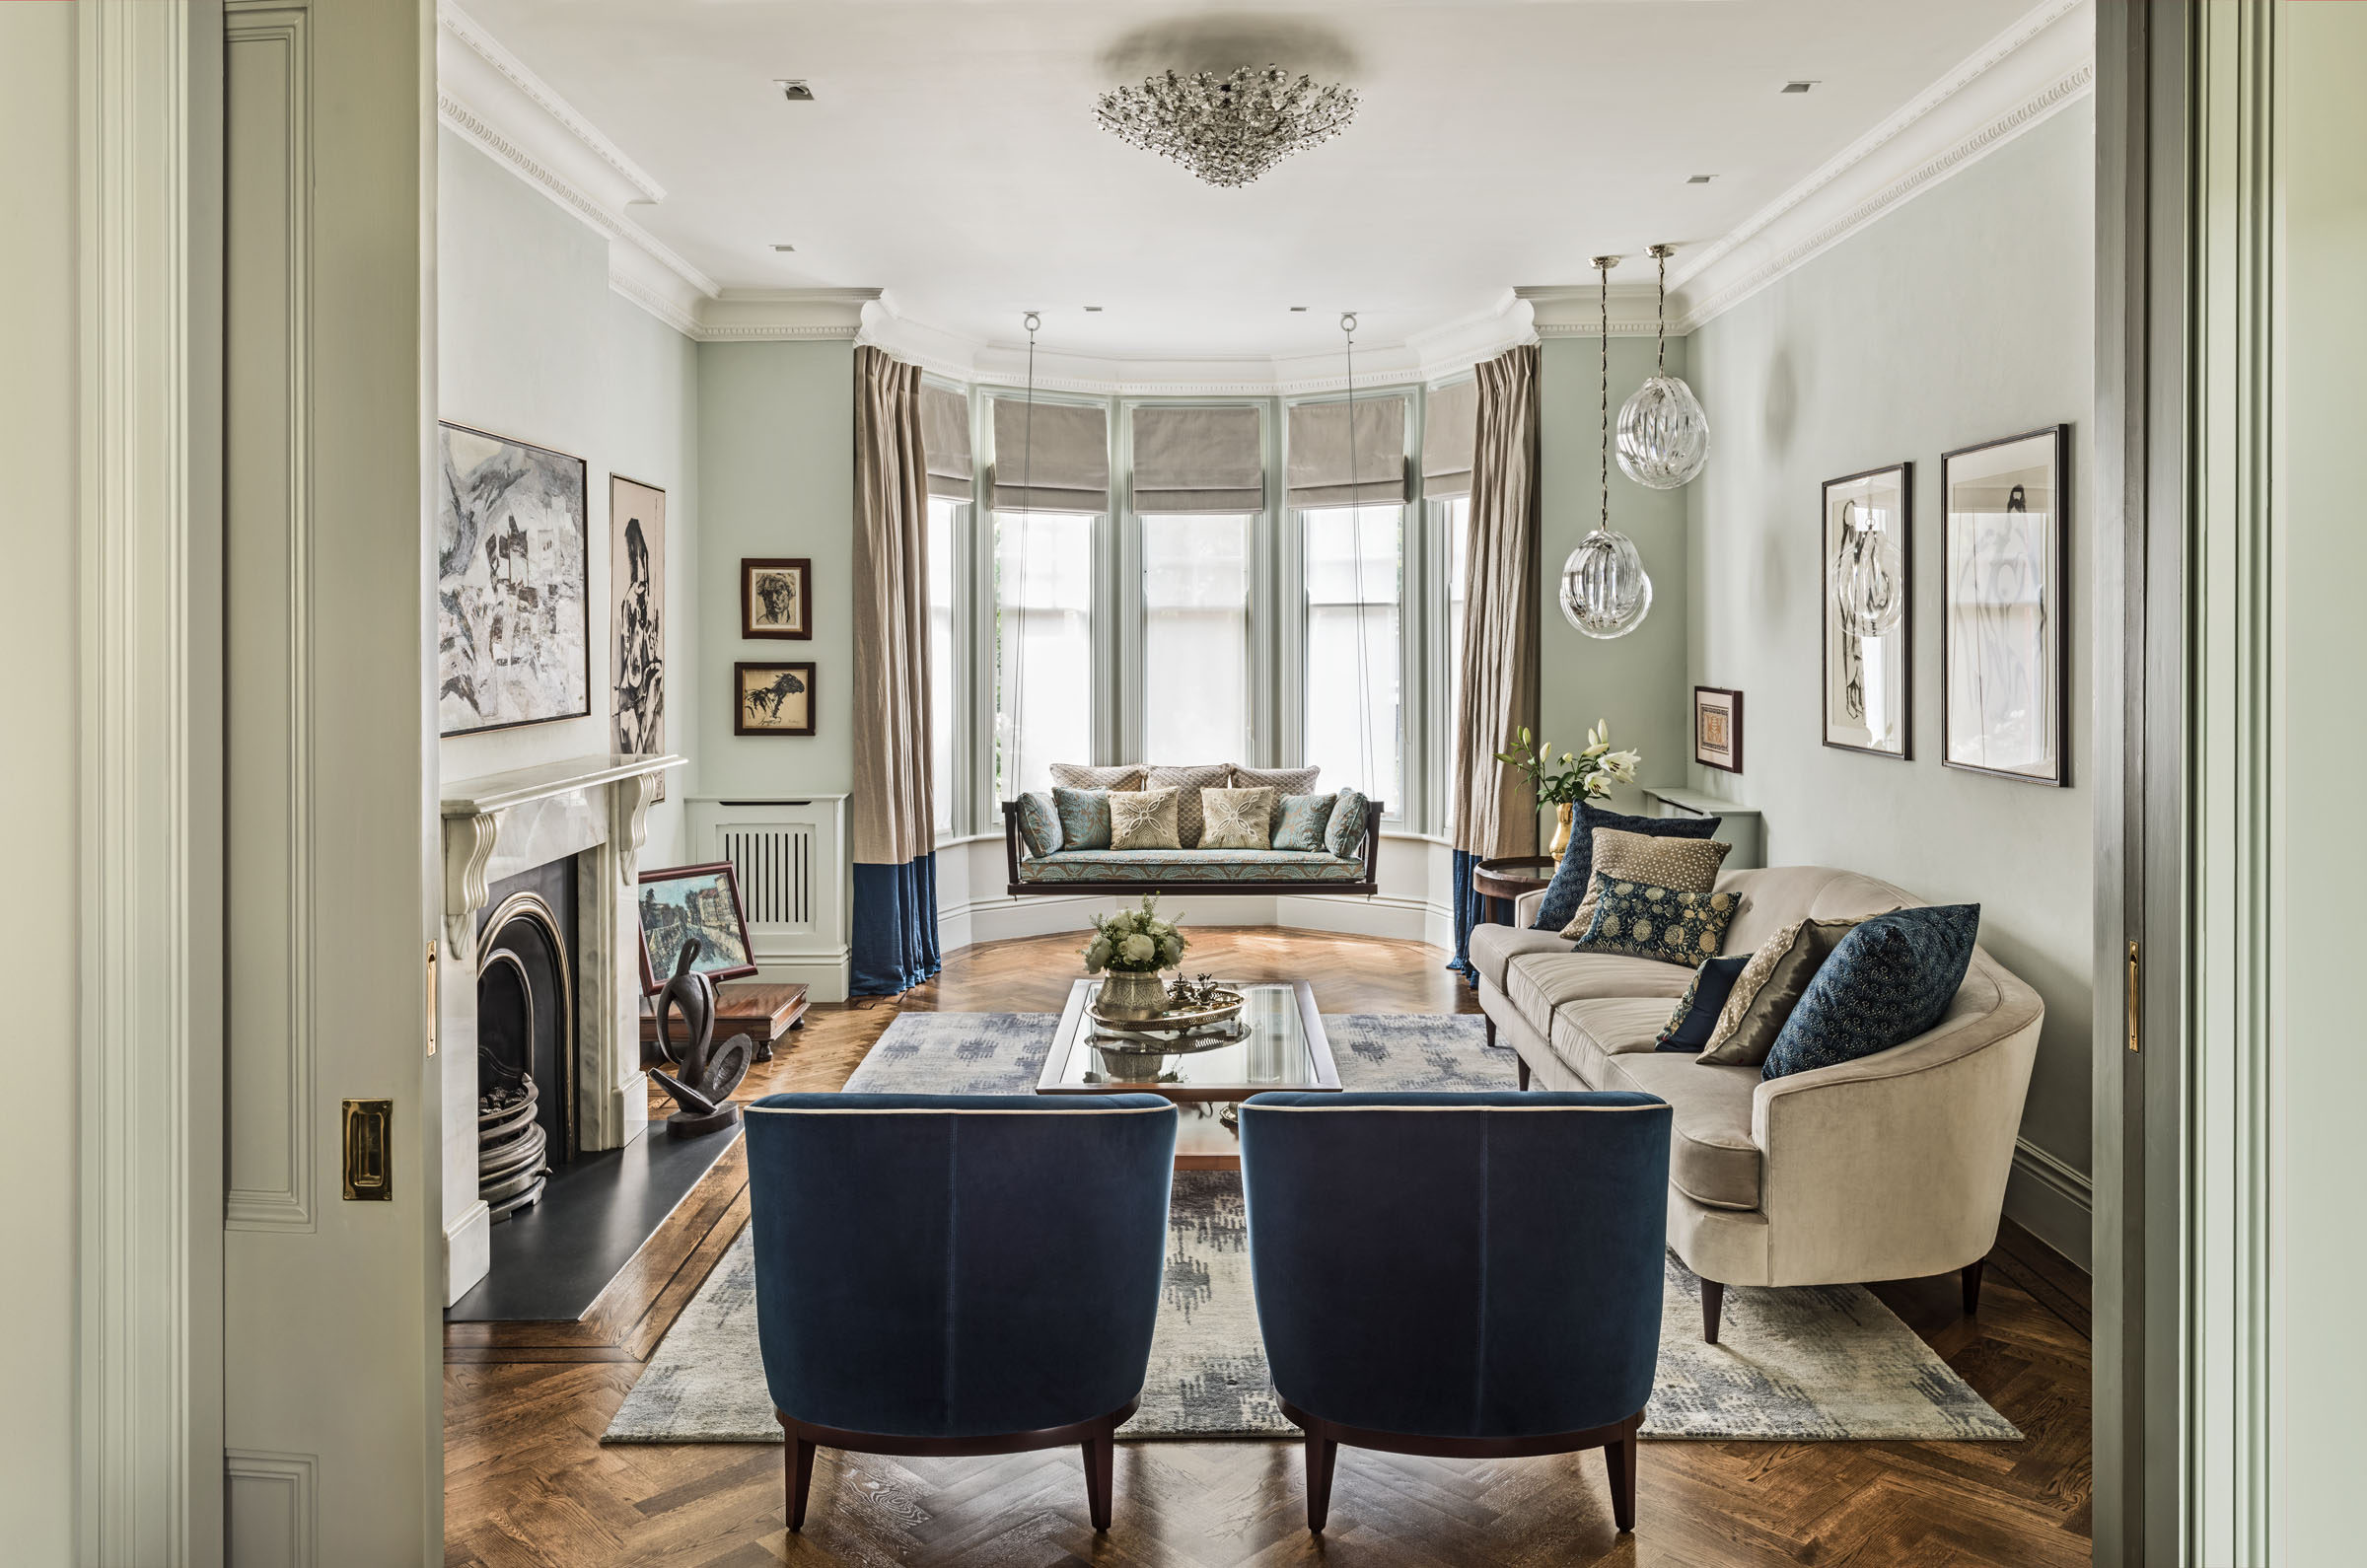 South hampstead house london luxury interior design for Living room interior ideas uk